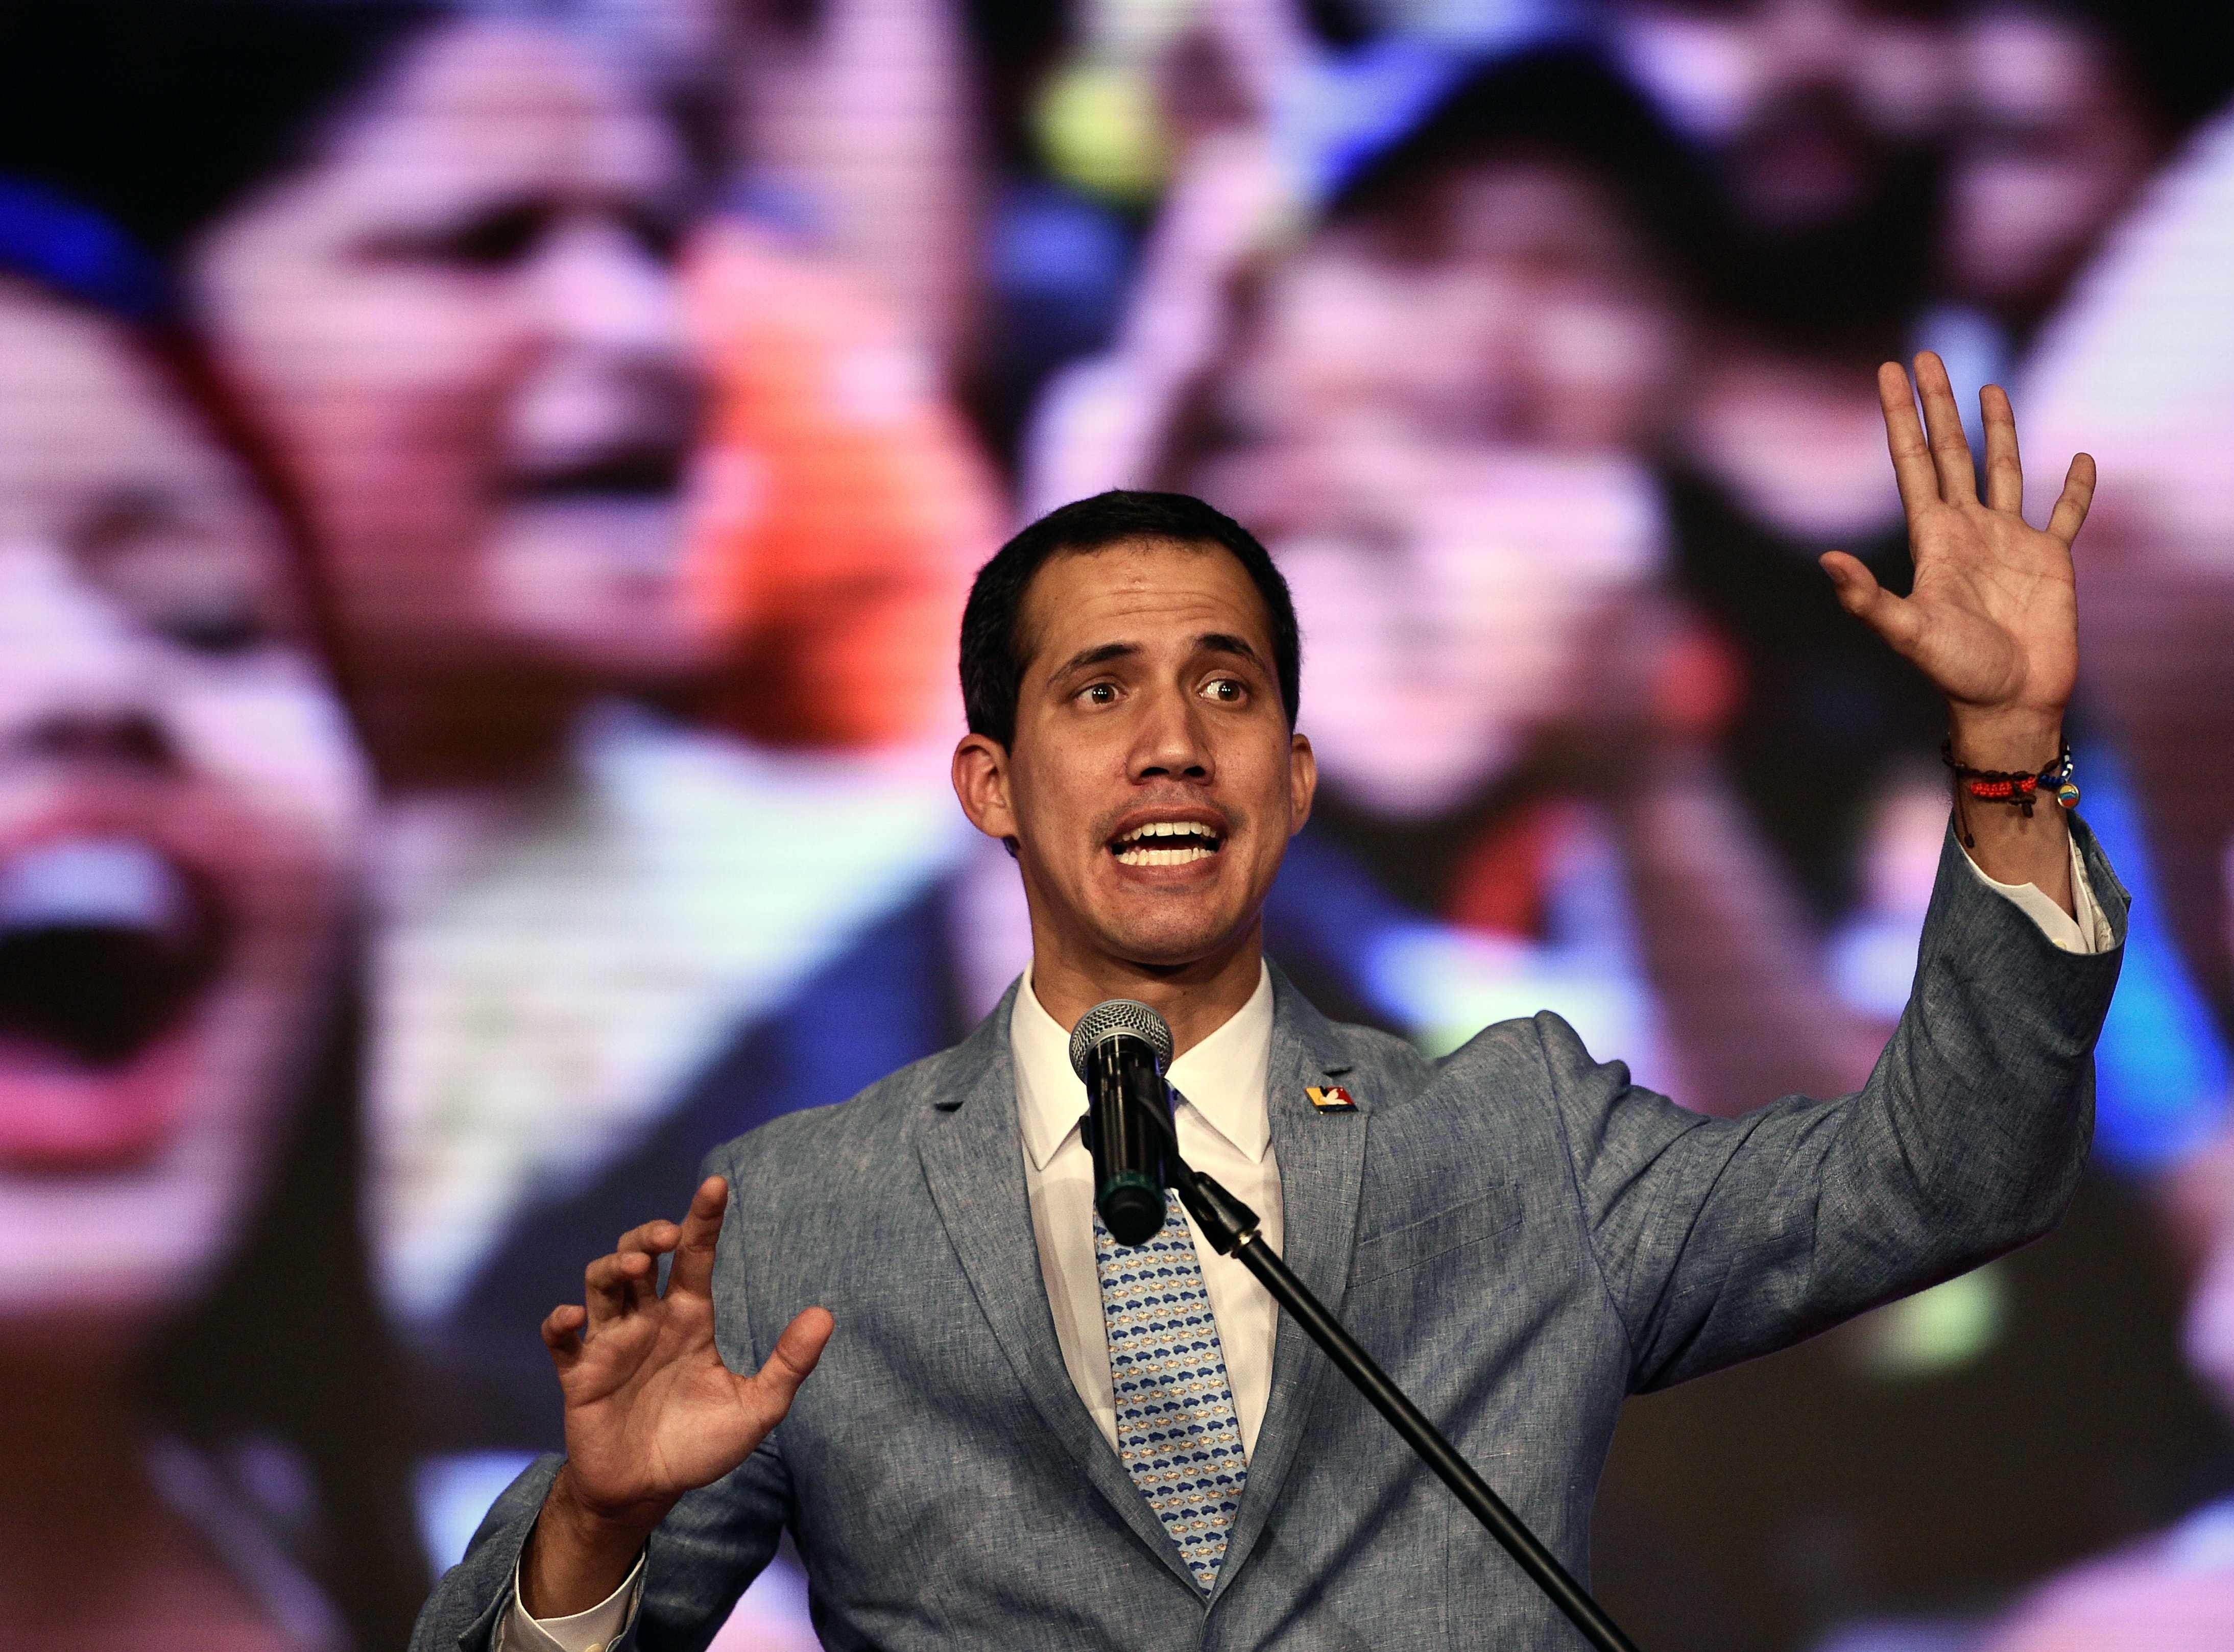 The president of Venezuela's National Assembly and self-proclaimed acting president Juan Guaido delivers a speech at the Central Universidy of Venezuela (UCV) in Caracas on February 8, 2019.